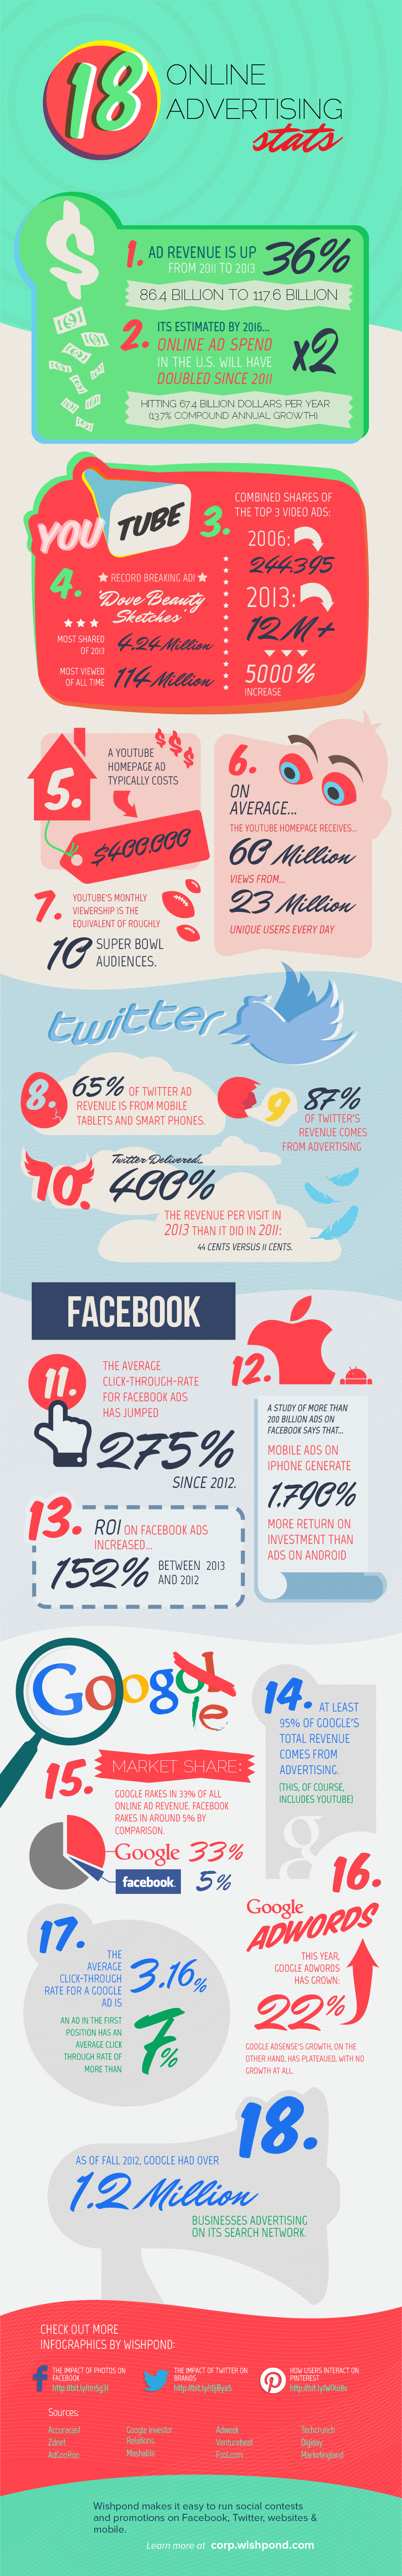 Infographic_OnlineAds_1.0